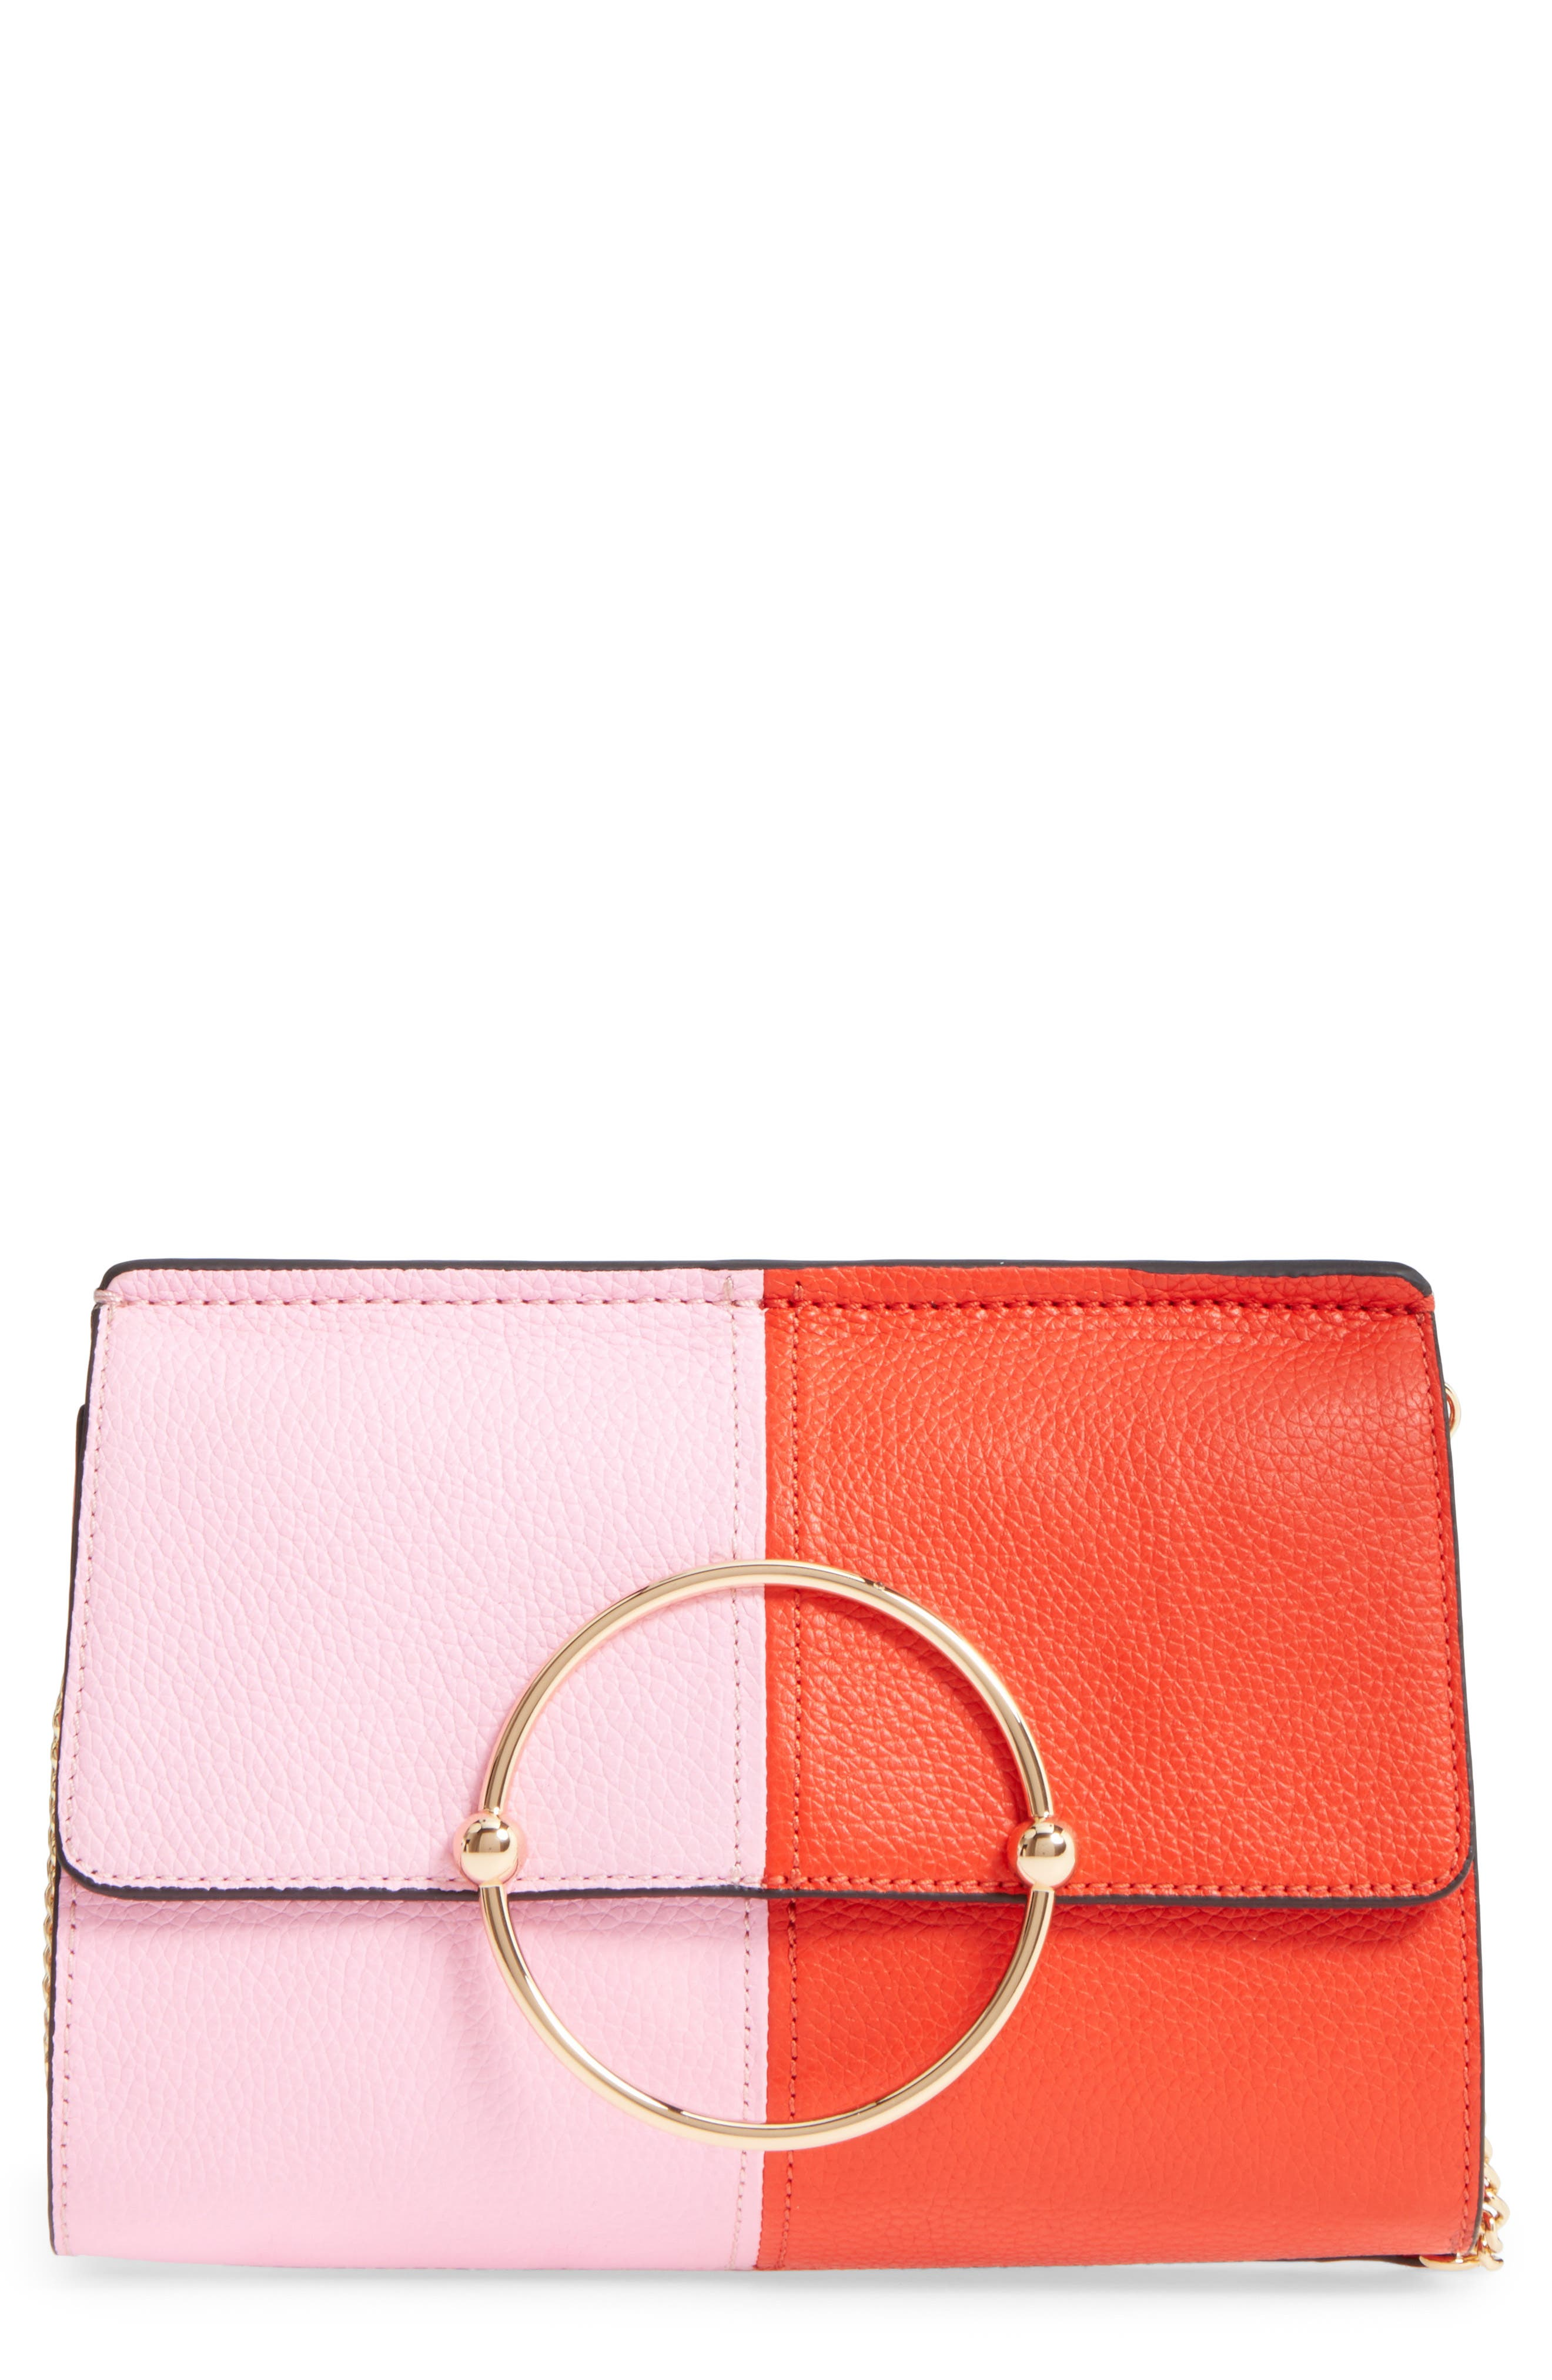 Astor Pebbled Leather Flap Clutch,                             Main thumbnail 4, color,